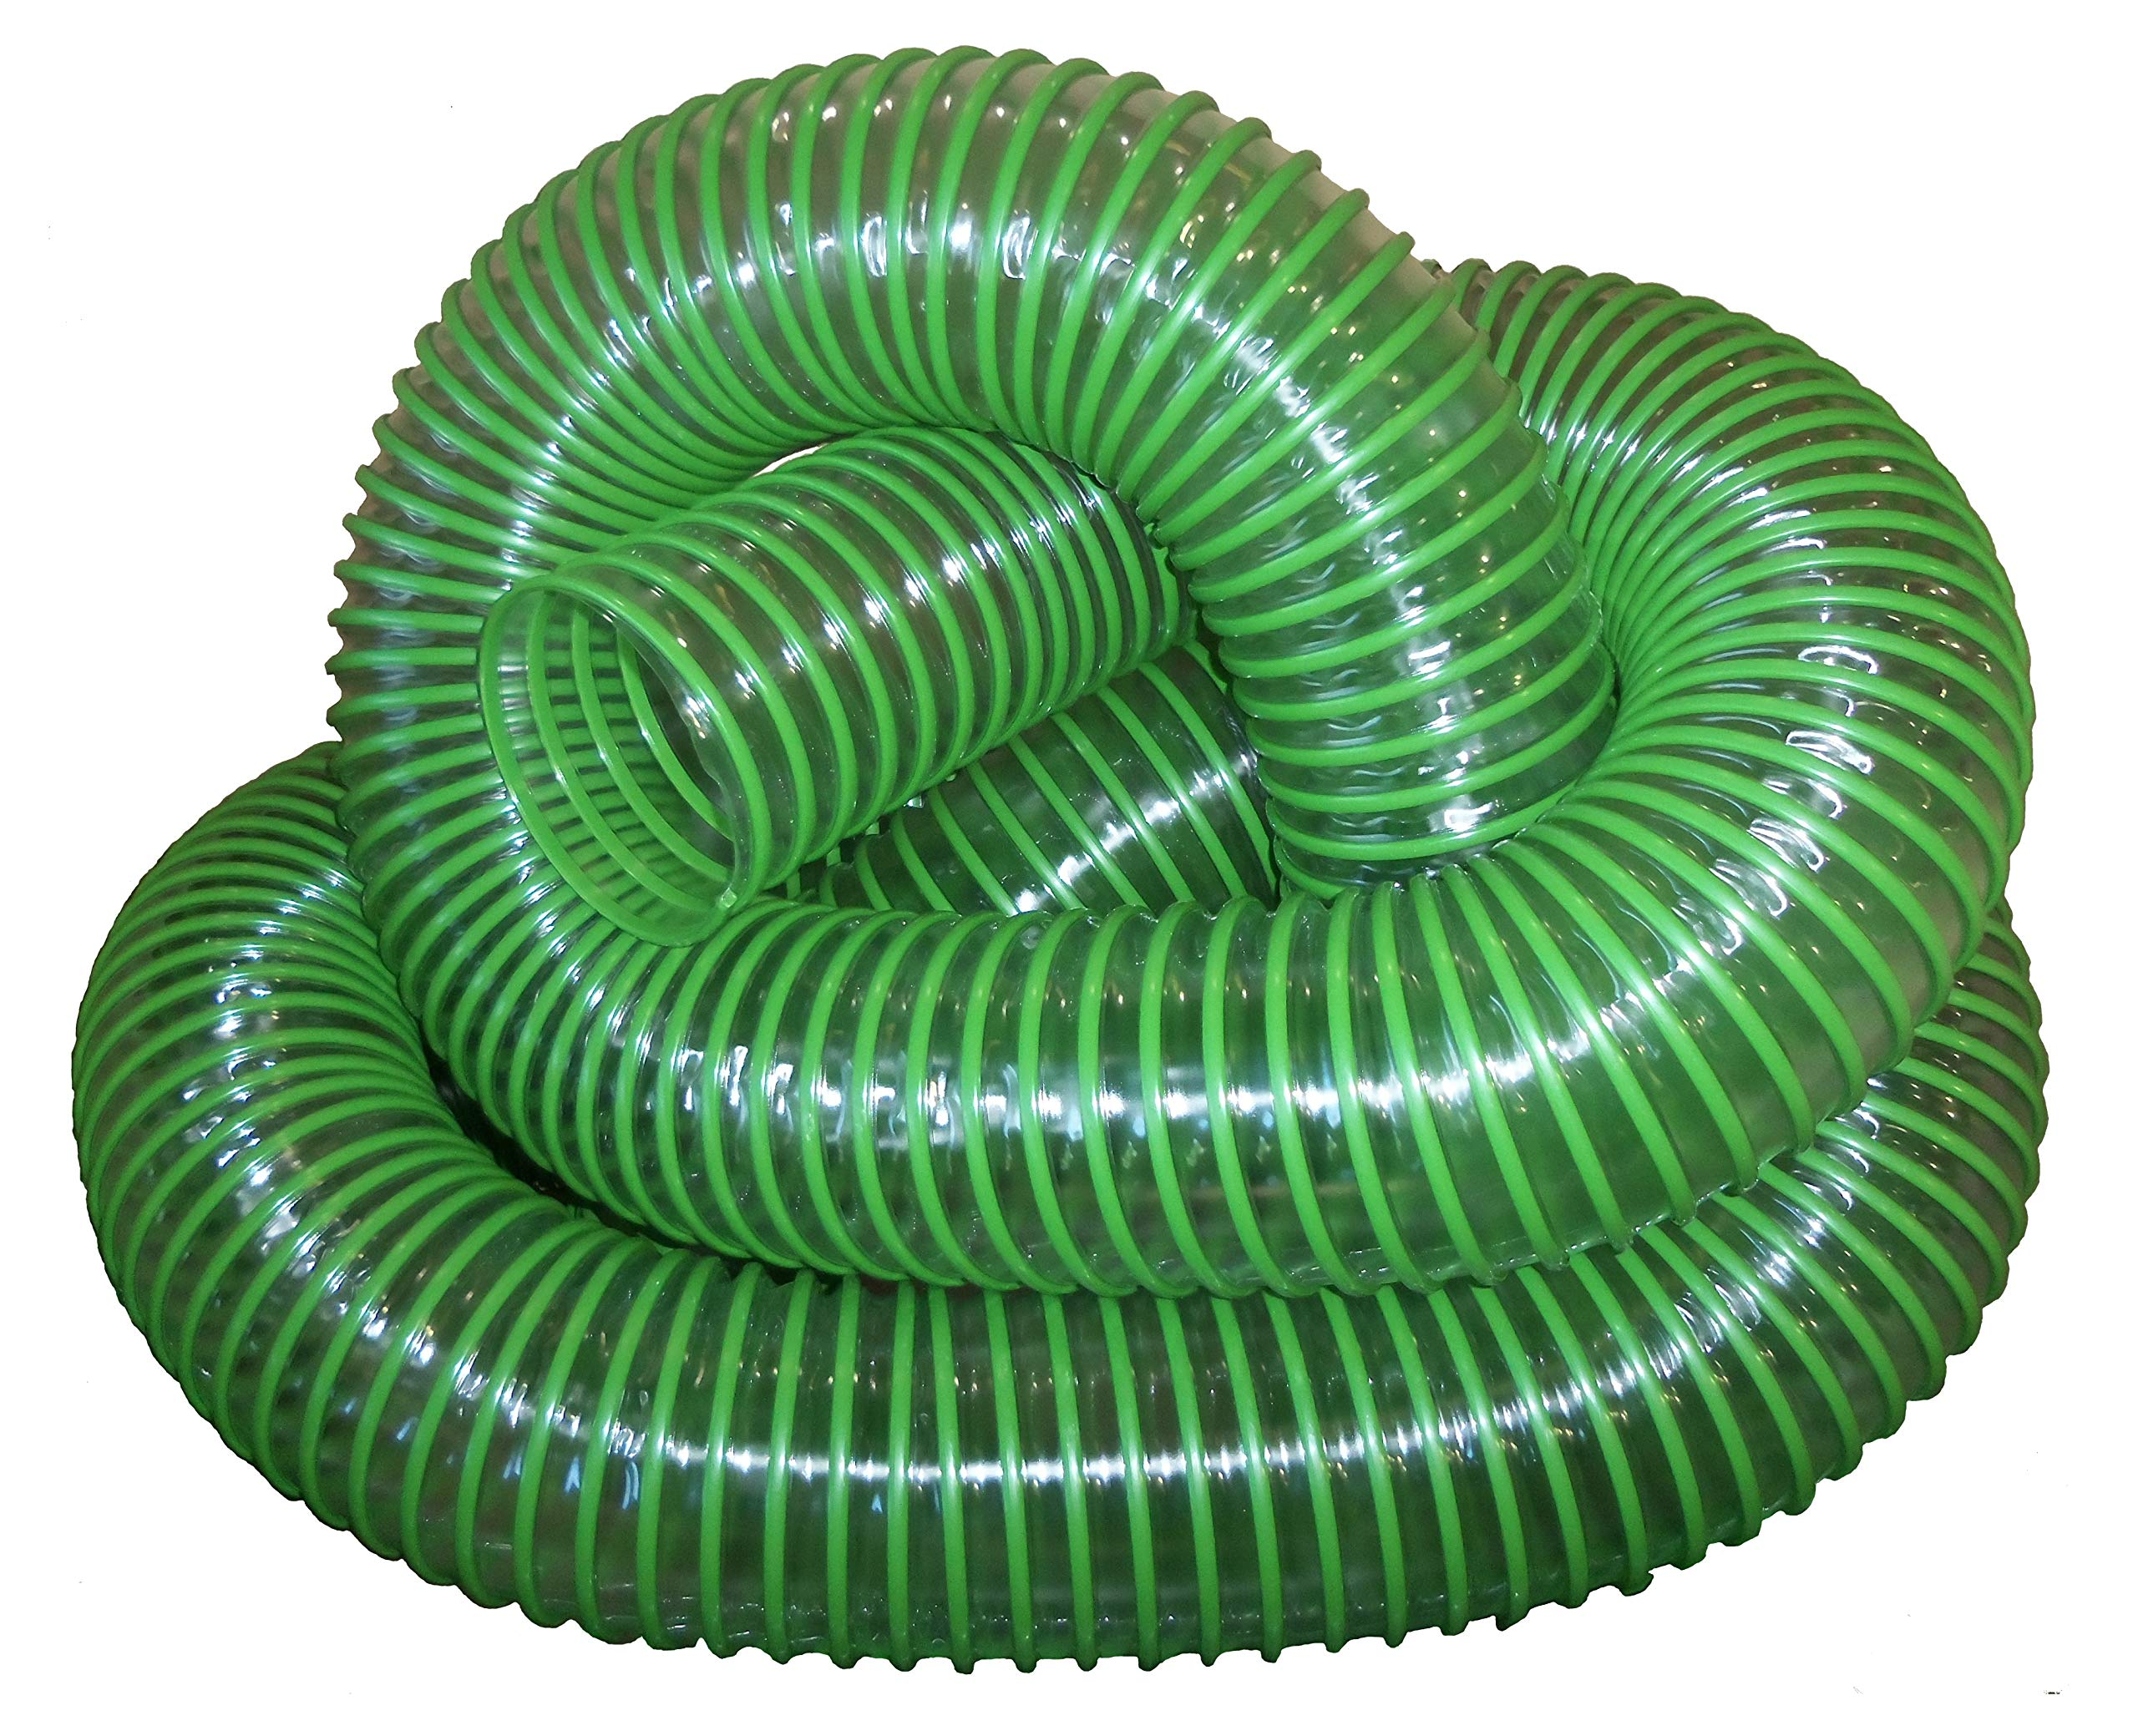 Green Leaf Vacuum Collection Yard Hose (6 Inch ID) | Clear Urethane .030'' Wall (Cut Length) (6x7) by Universal Hose and Fittings